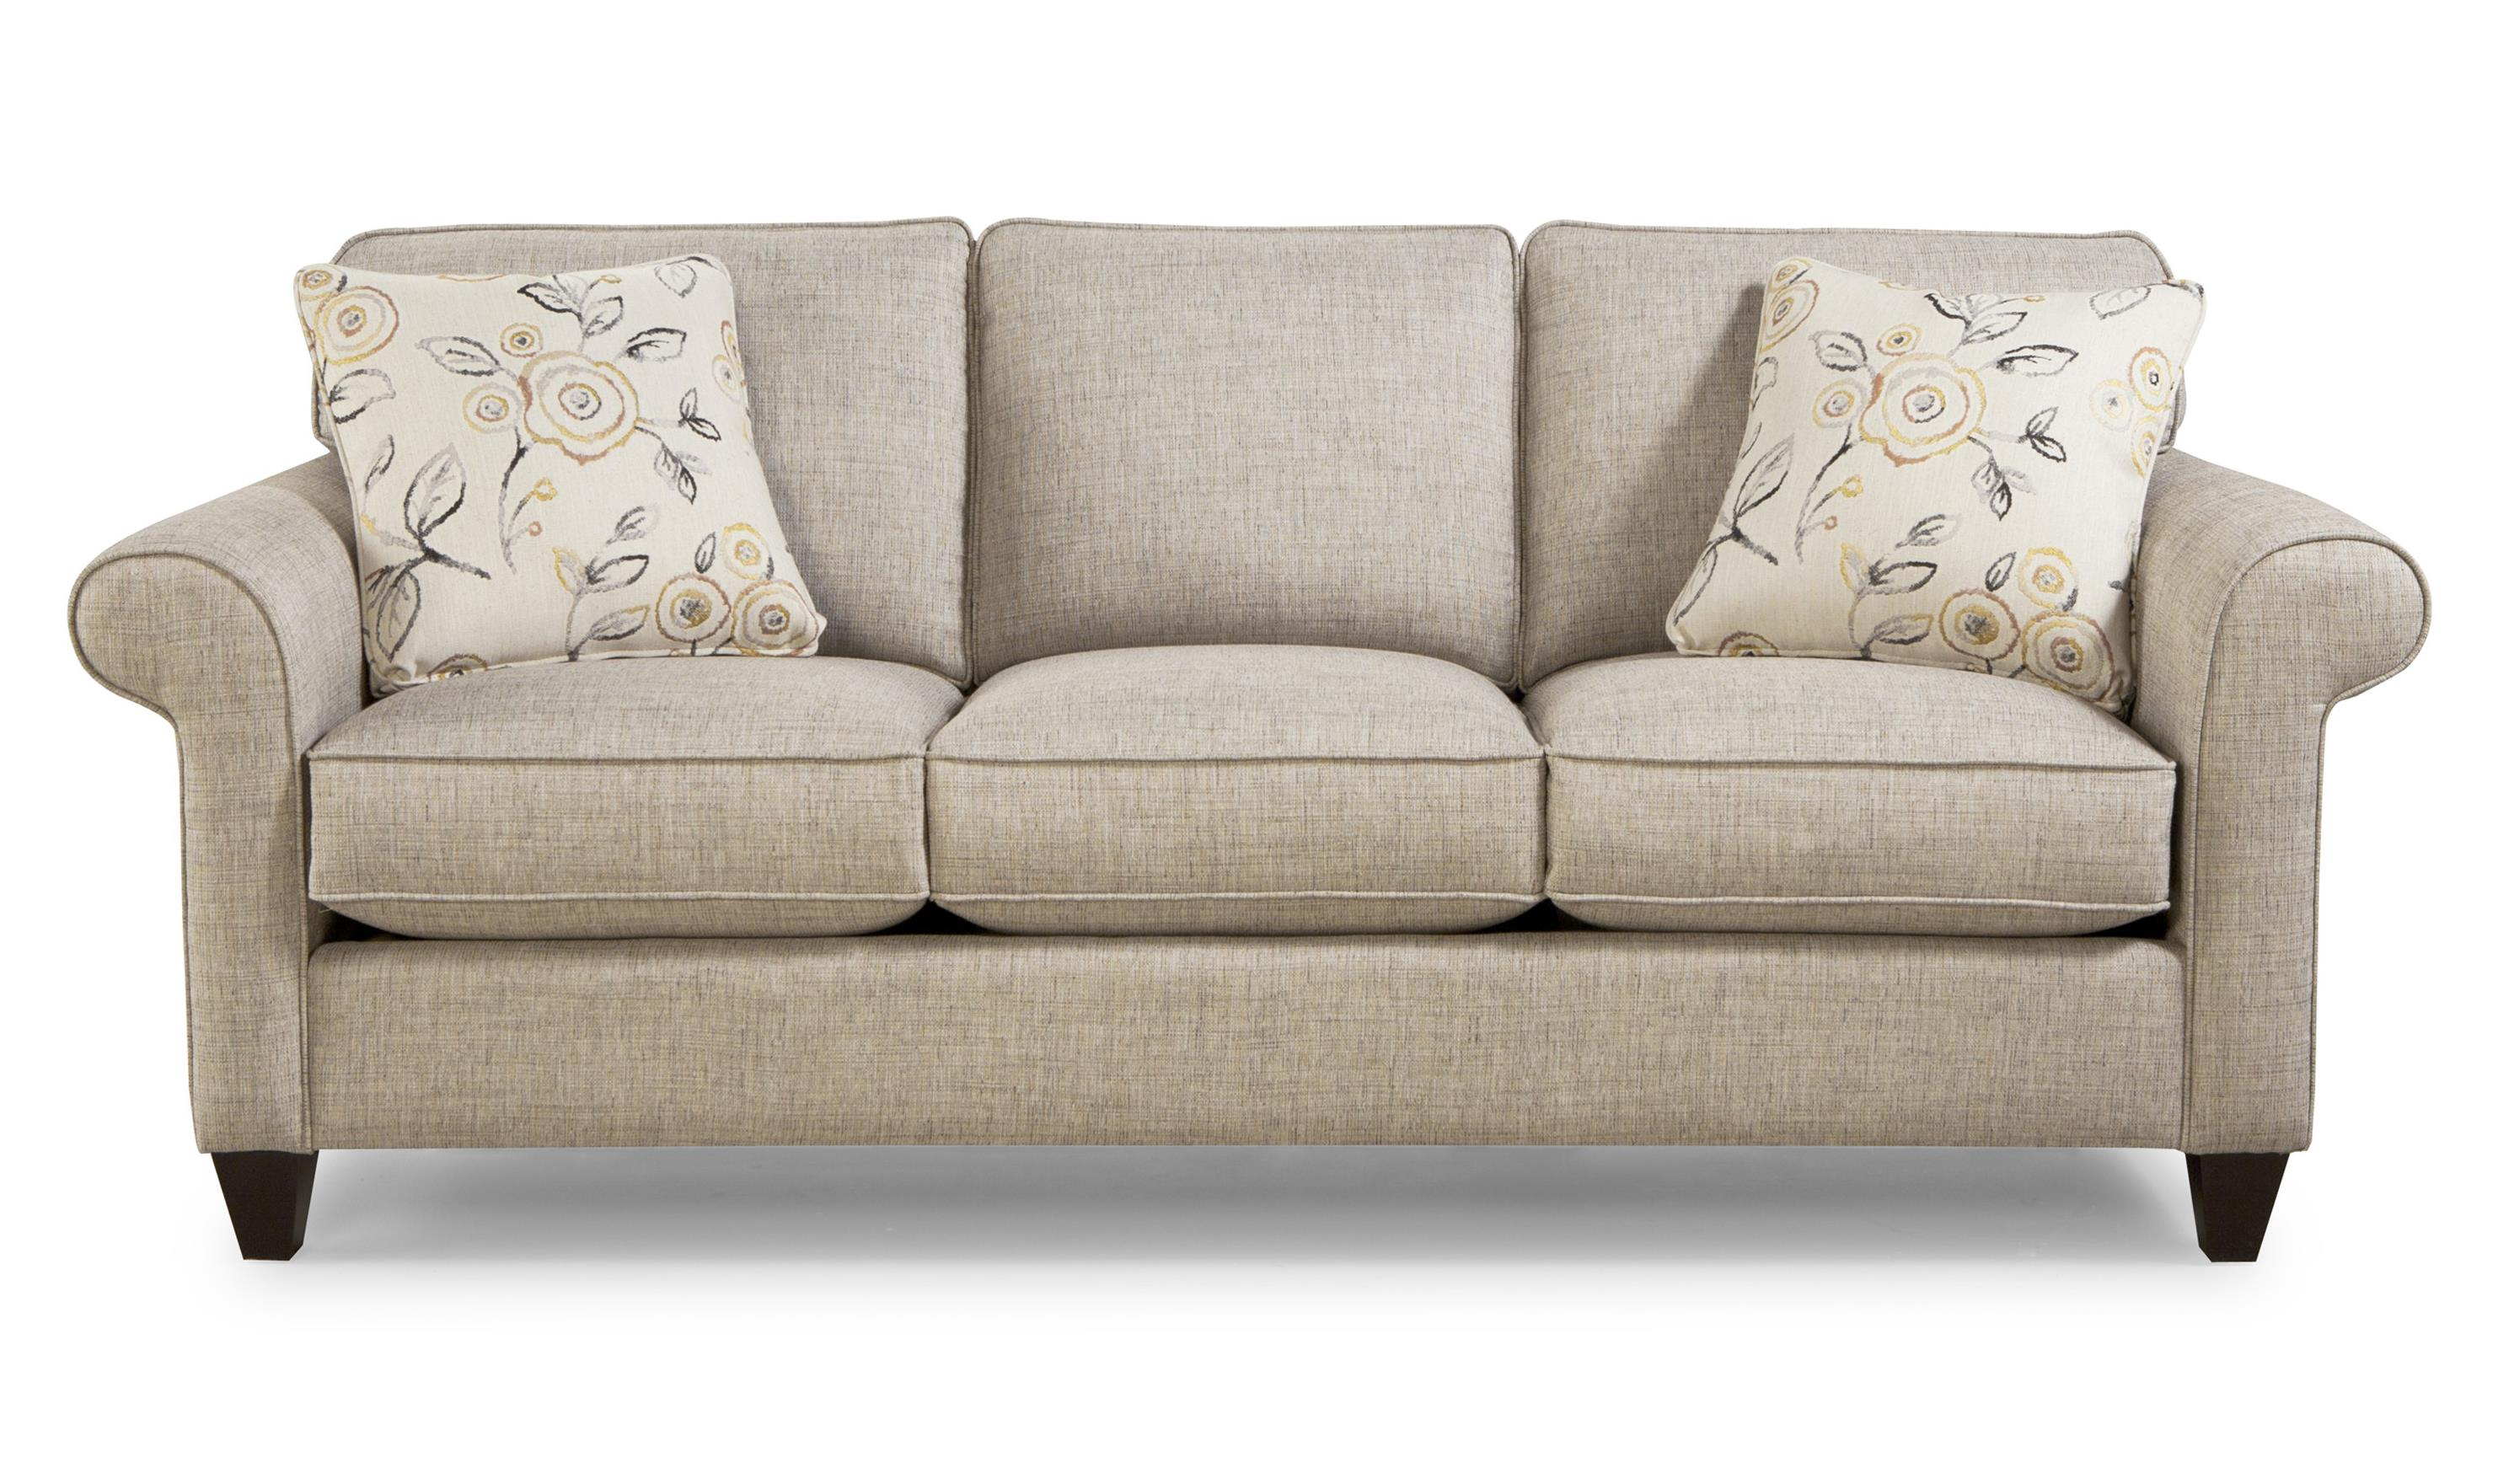 7421 Memoryfoam Sleeper Sofa by Craftmaster at Baer's Furniture